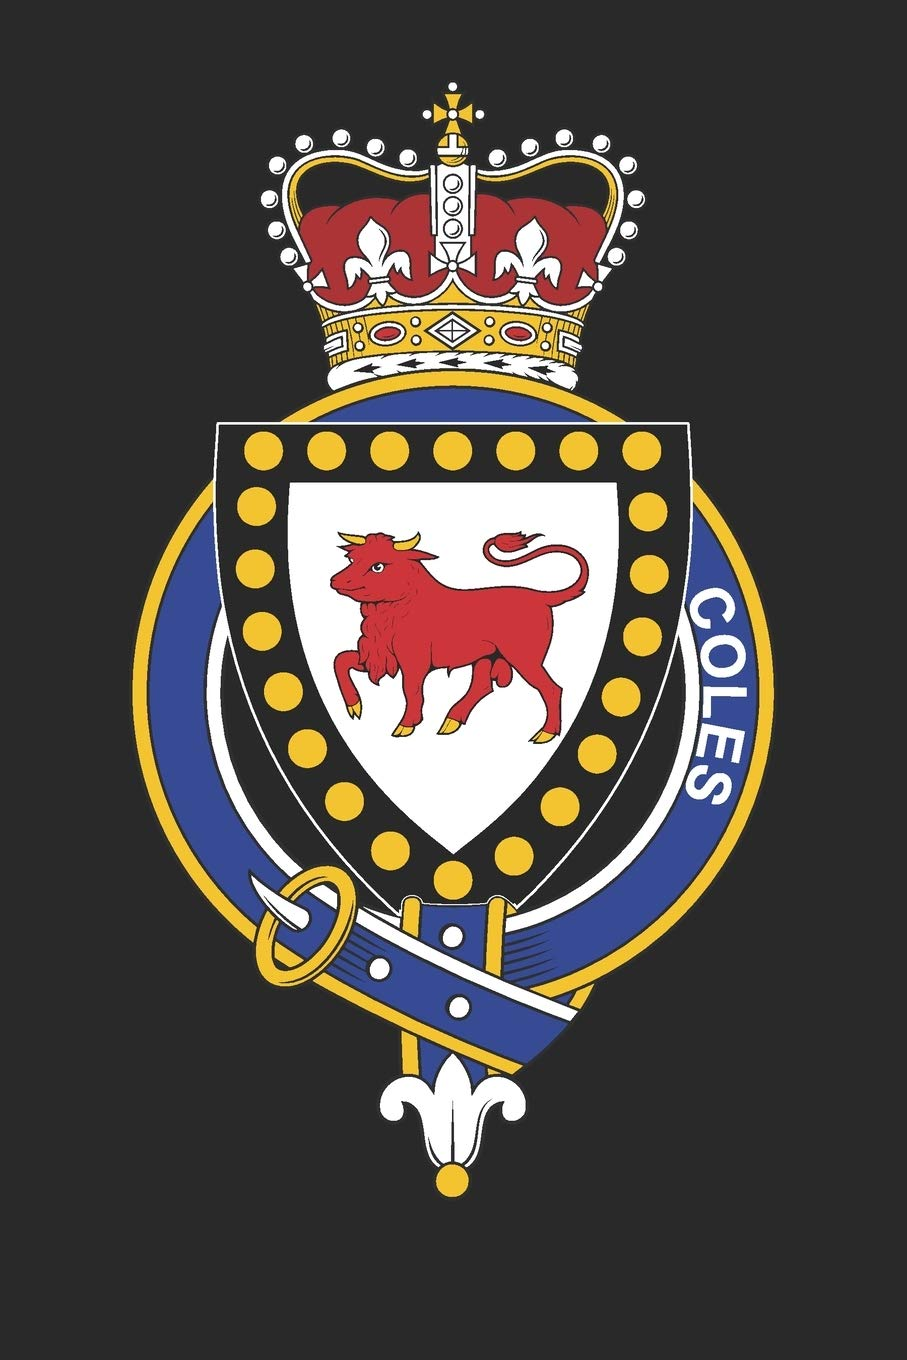 Amazon Com Coles Coles Coat Of Arms And Family Crest Notebook Journal 6 X 9 100 Pages 9781671972865 Family Coles Books